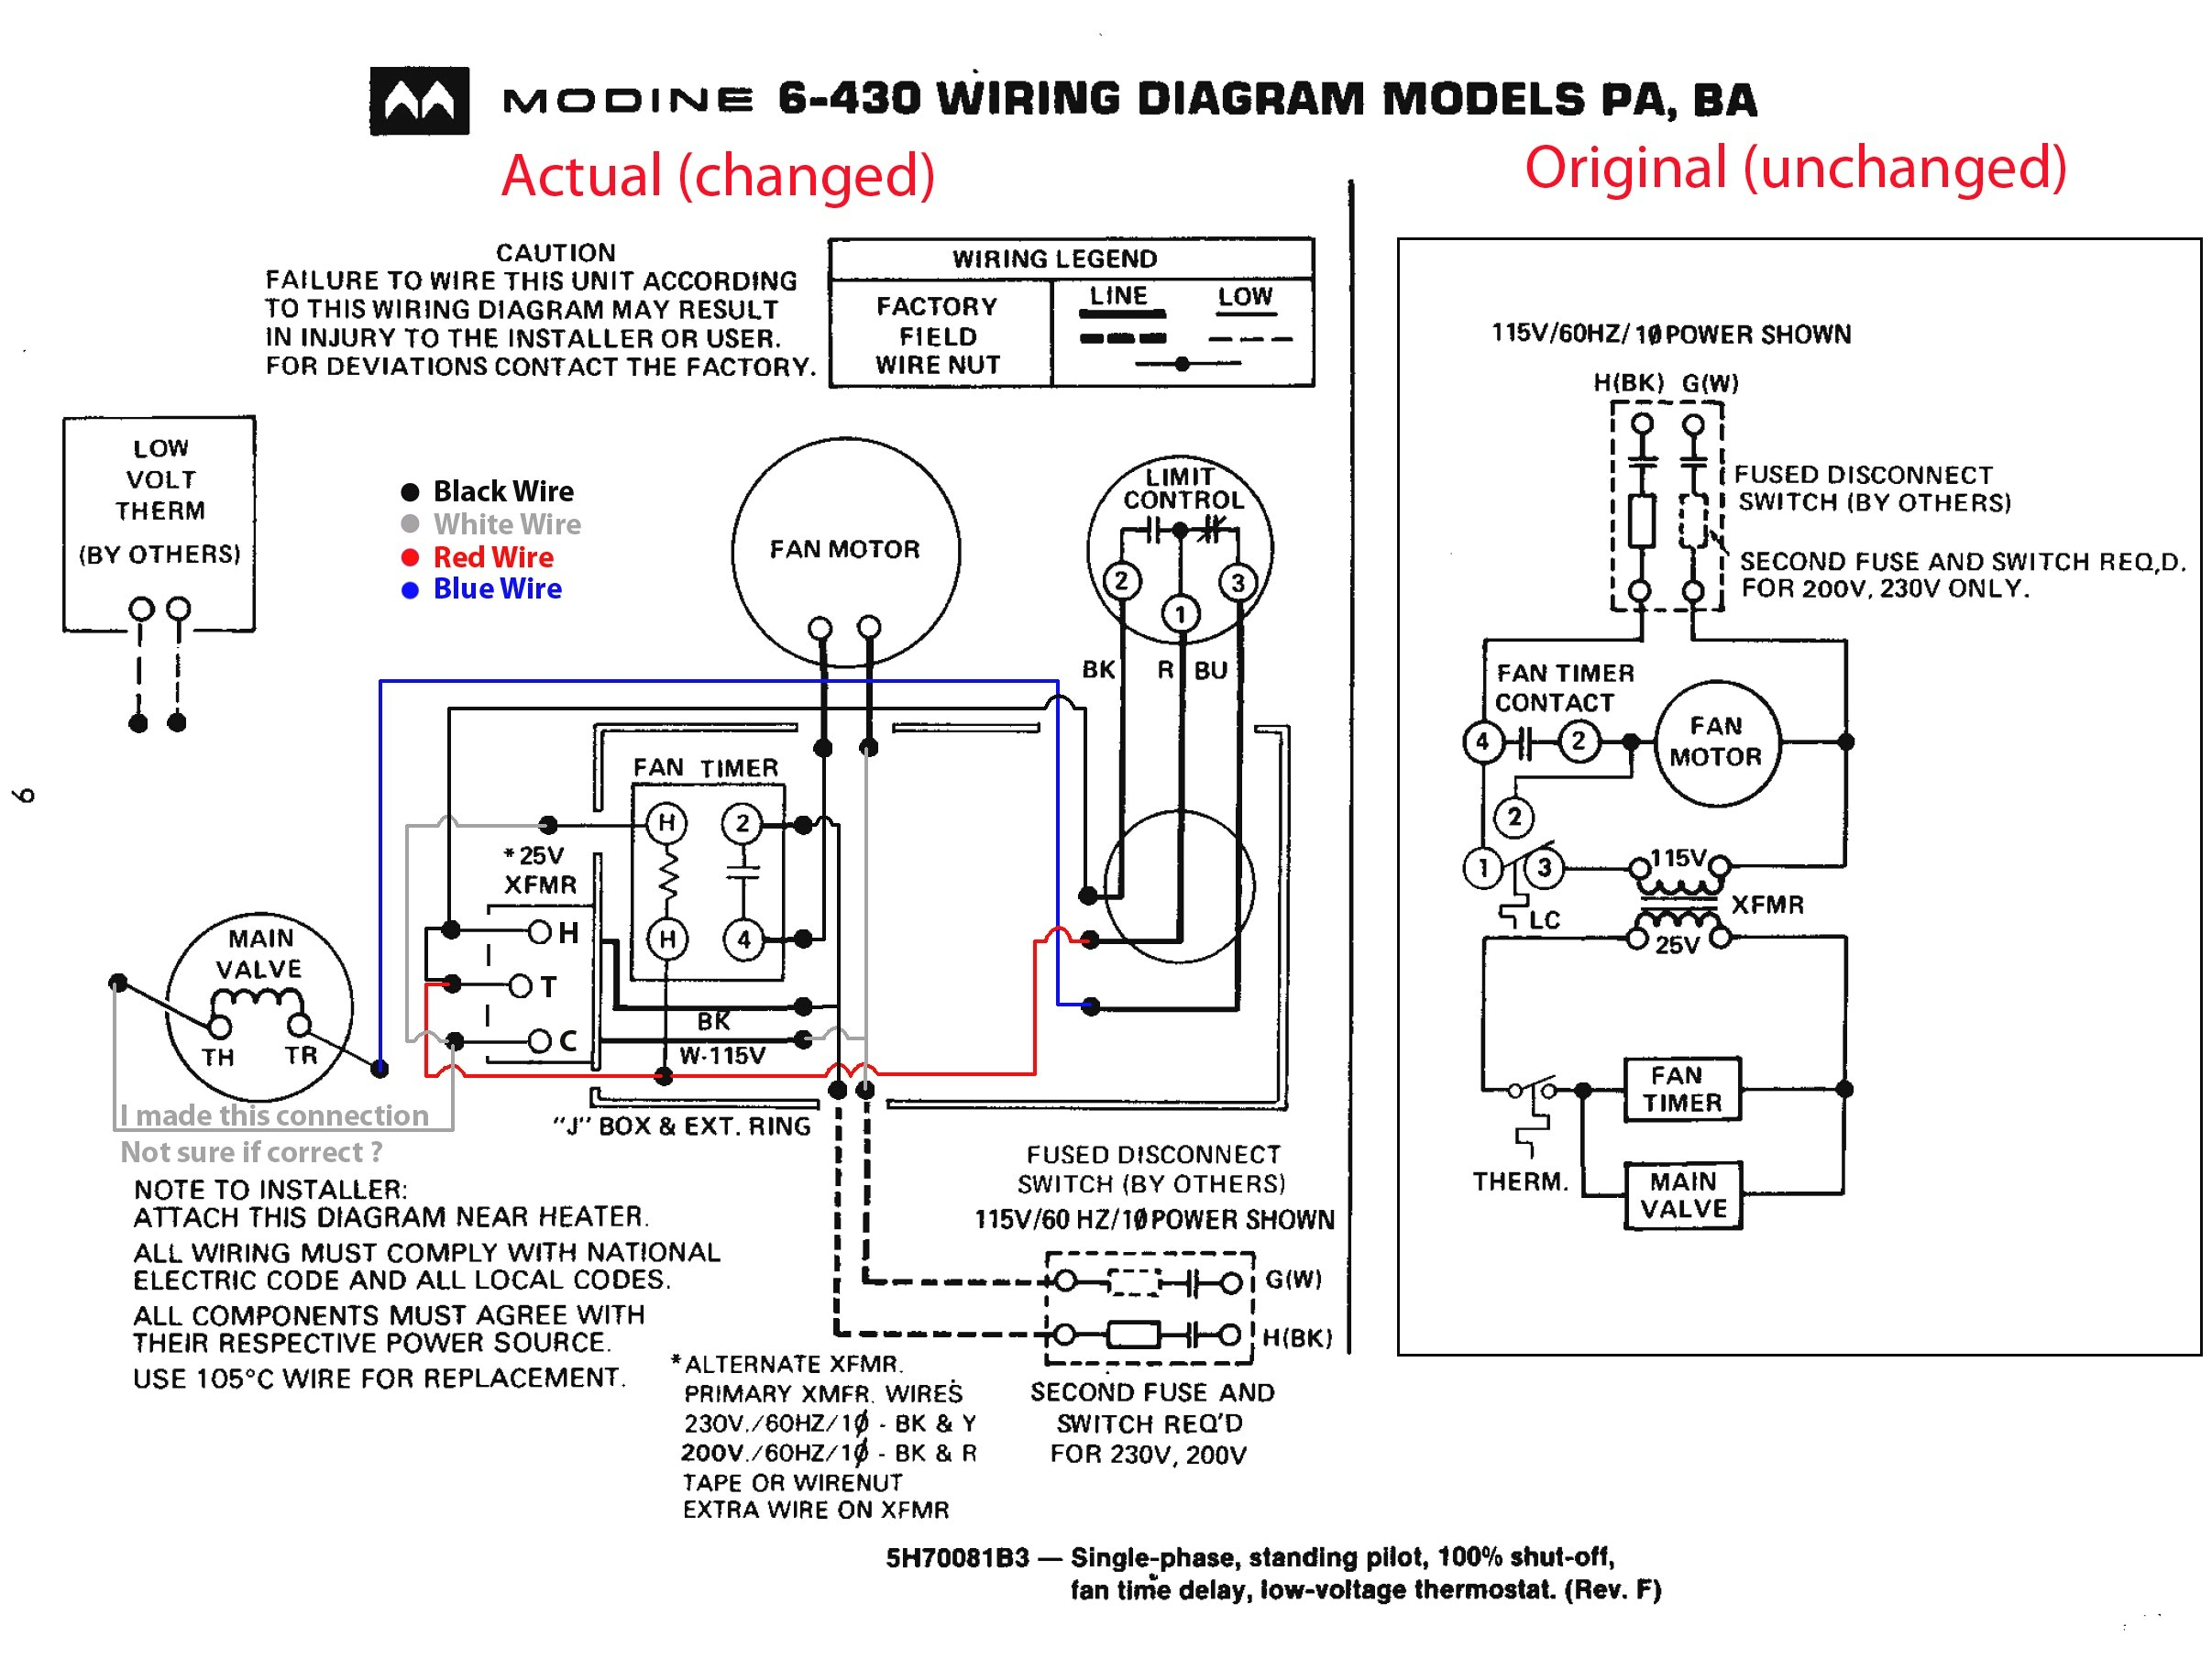 Wiring Diagram For Atwood Hot Water Heater : Atwood hot water heater wiring diagram collection